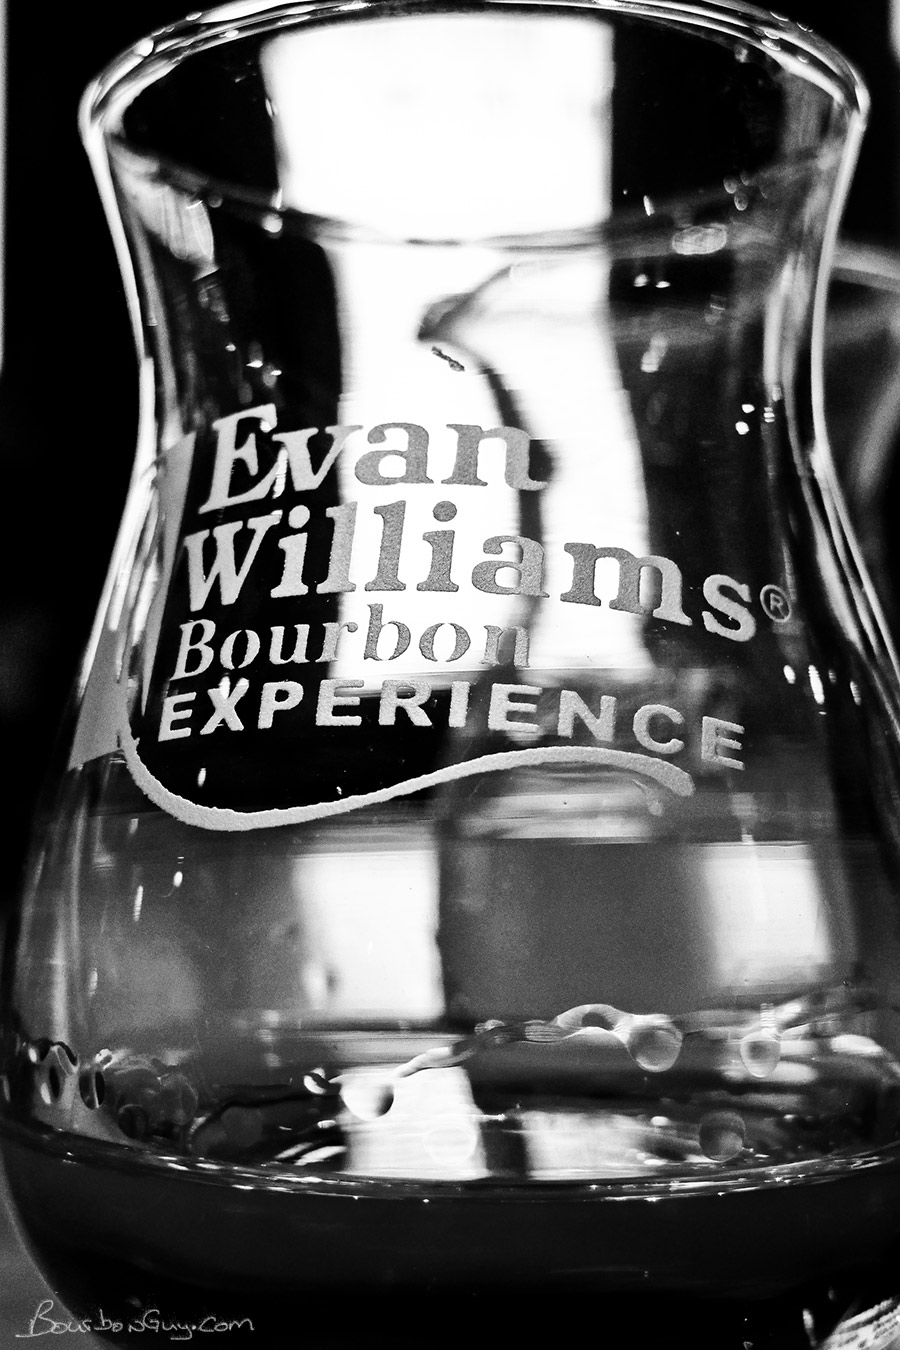 A little bourbon in the glass is a very nice way to end a wonderful  experience .